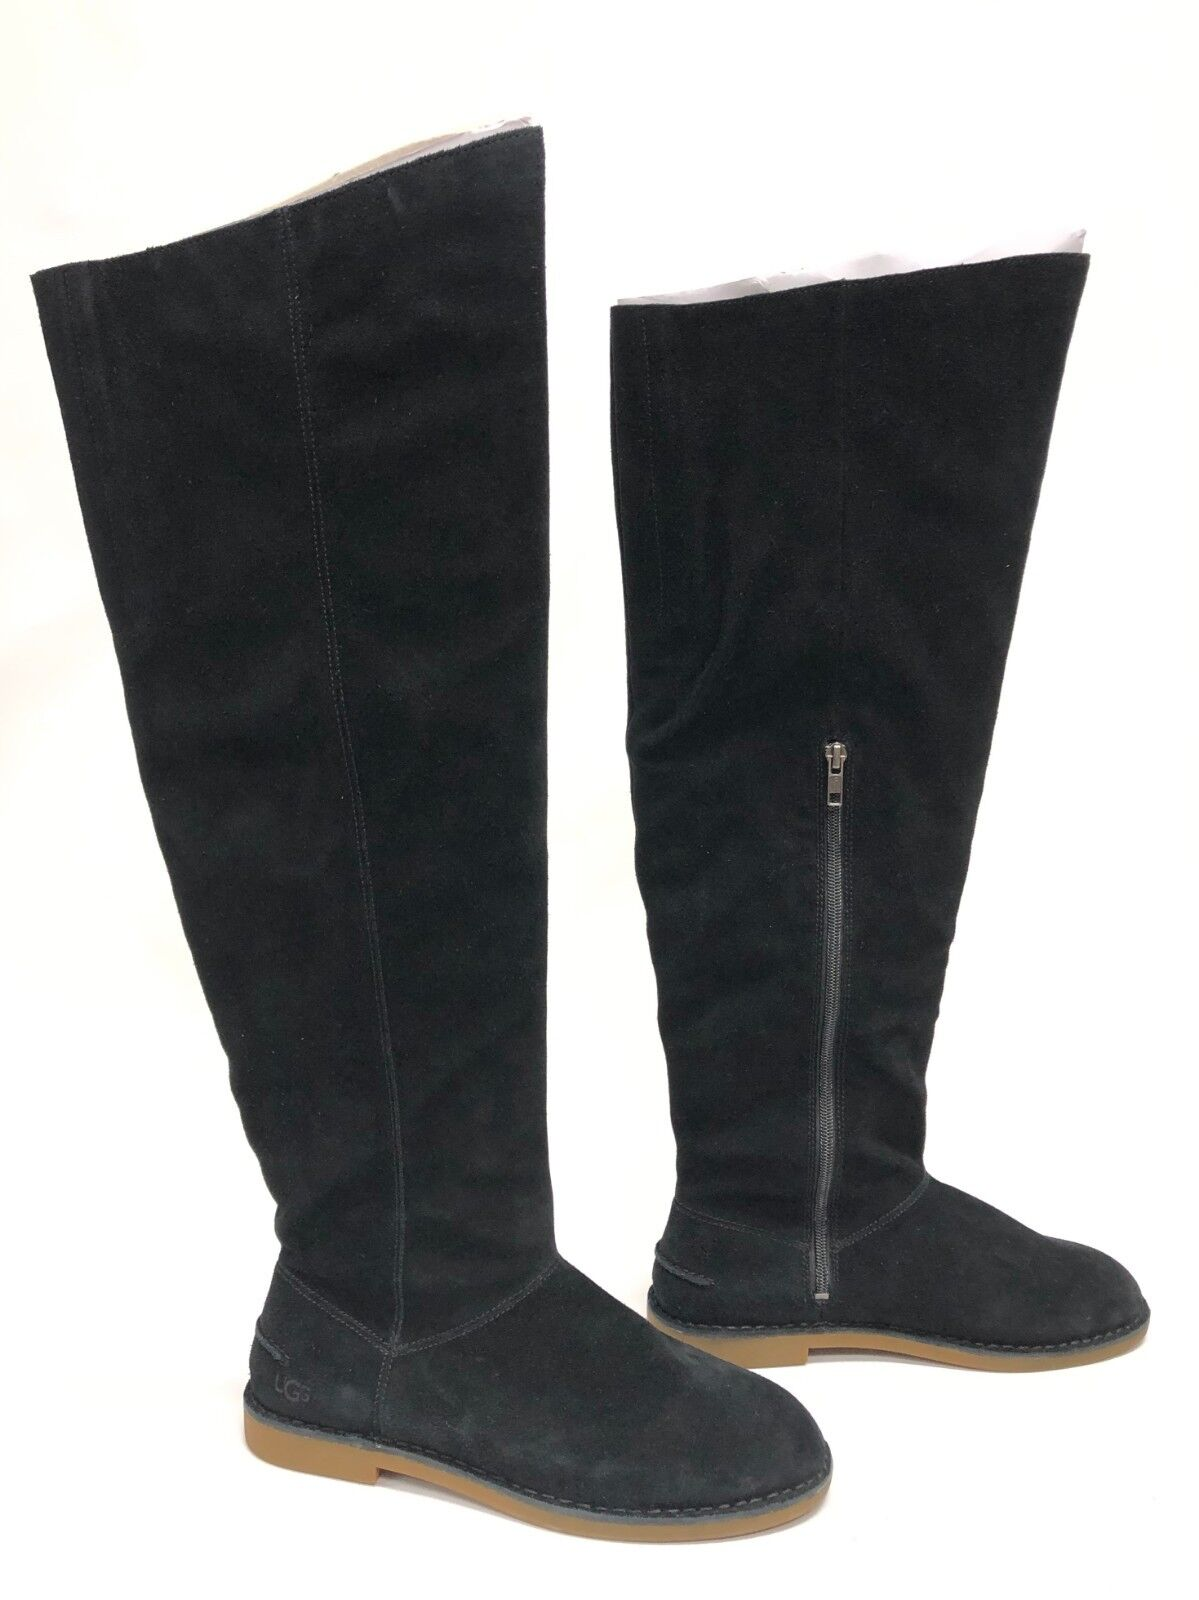 7b813d52237 Uggs Australia UGG Loma Over The Knee BOOTS Black 8.5 Suede 1095394 for  sale online